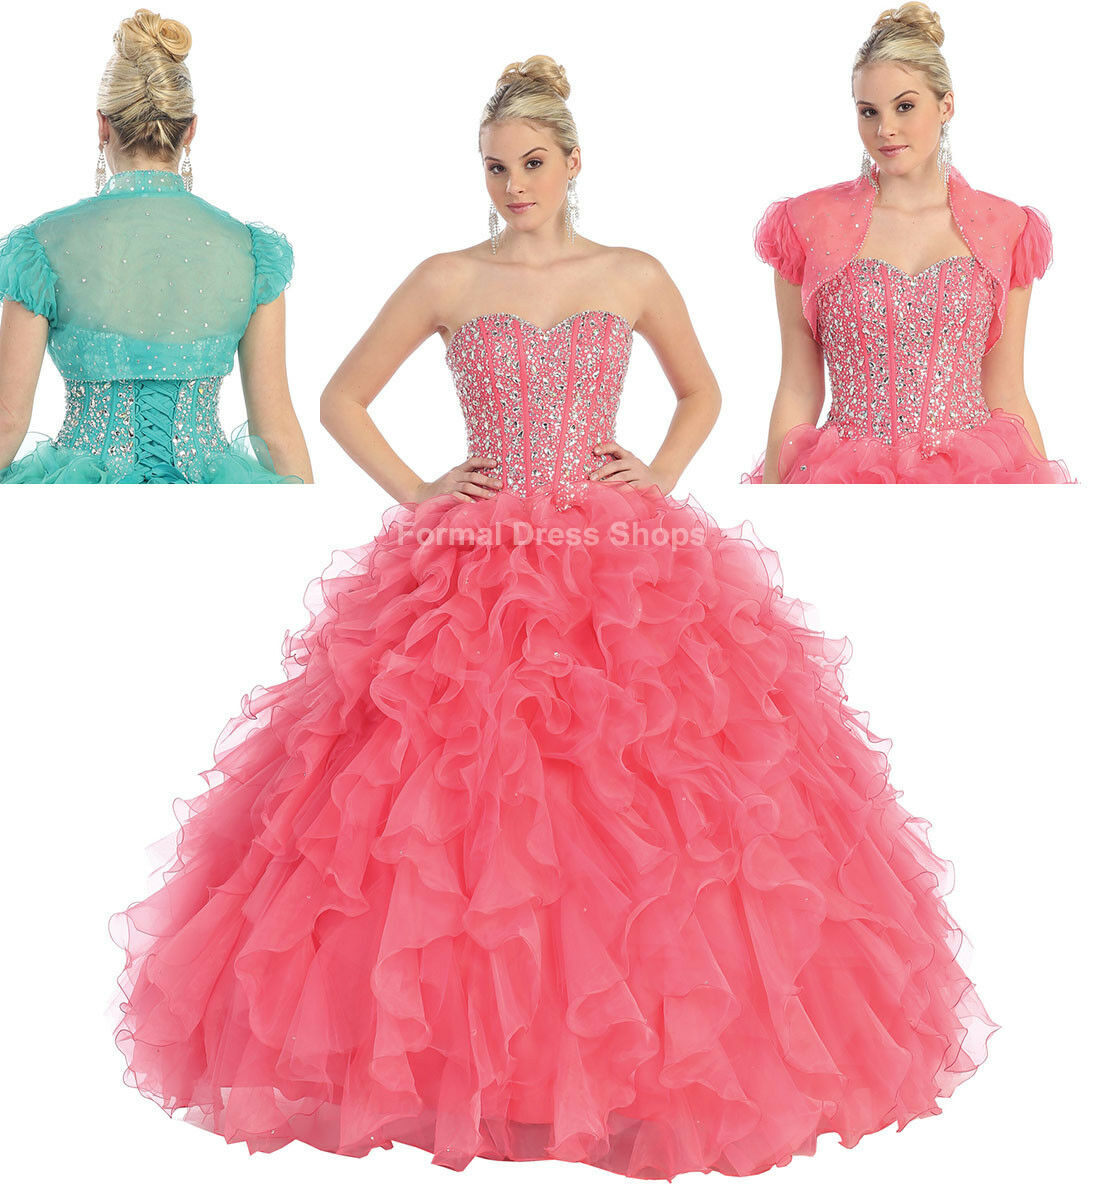 Quinceanera Ball Gowns Sale Online Shopping - dhgate.com